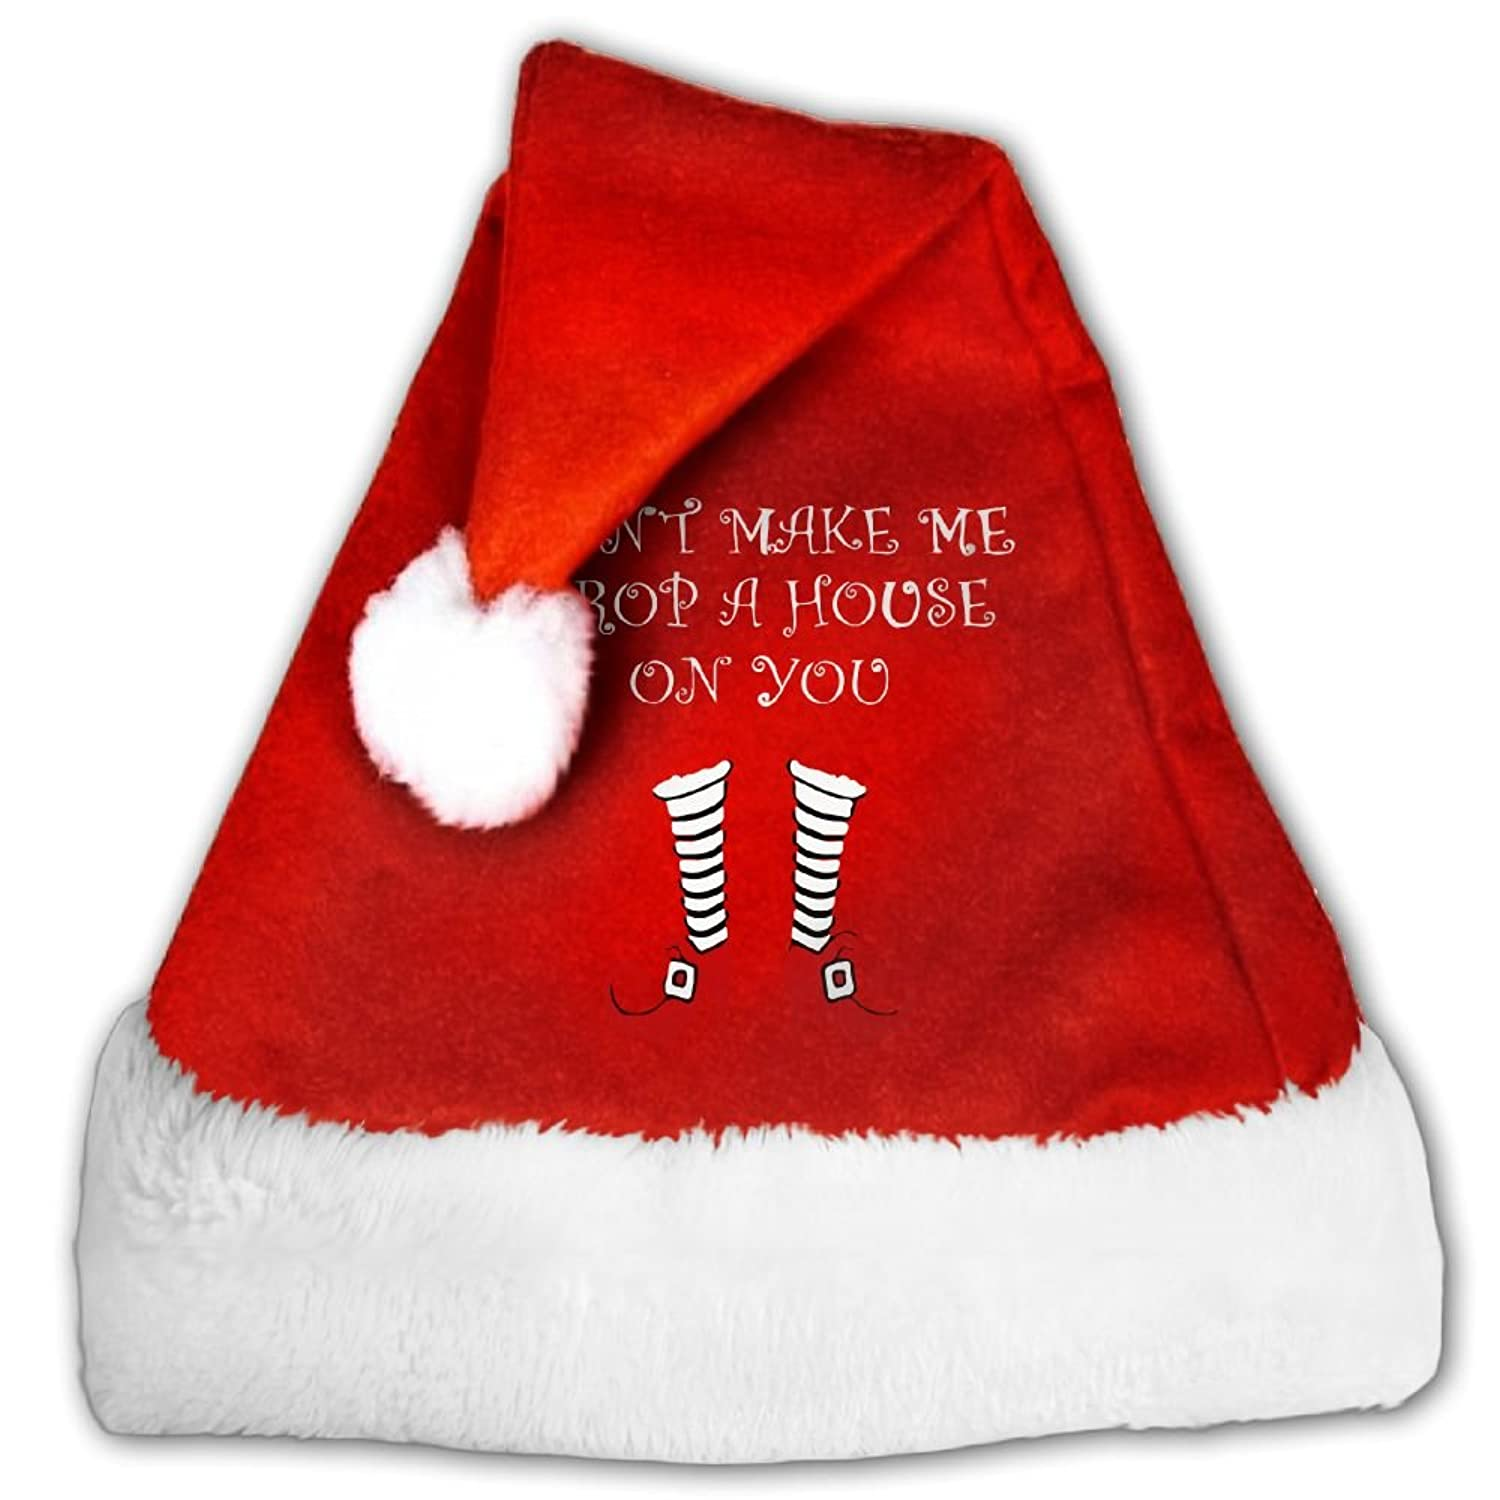 Amazon.com: Moonmoon Halloween Red Shoes 2017 Holiday Party Santa Claus Christmas Hat: Clothing